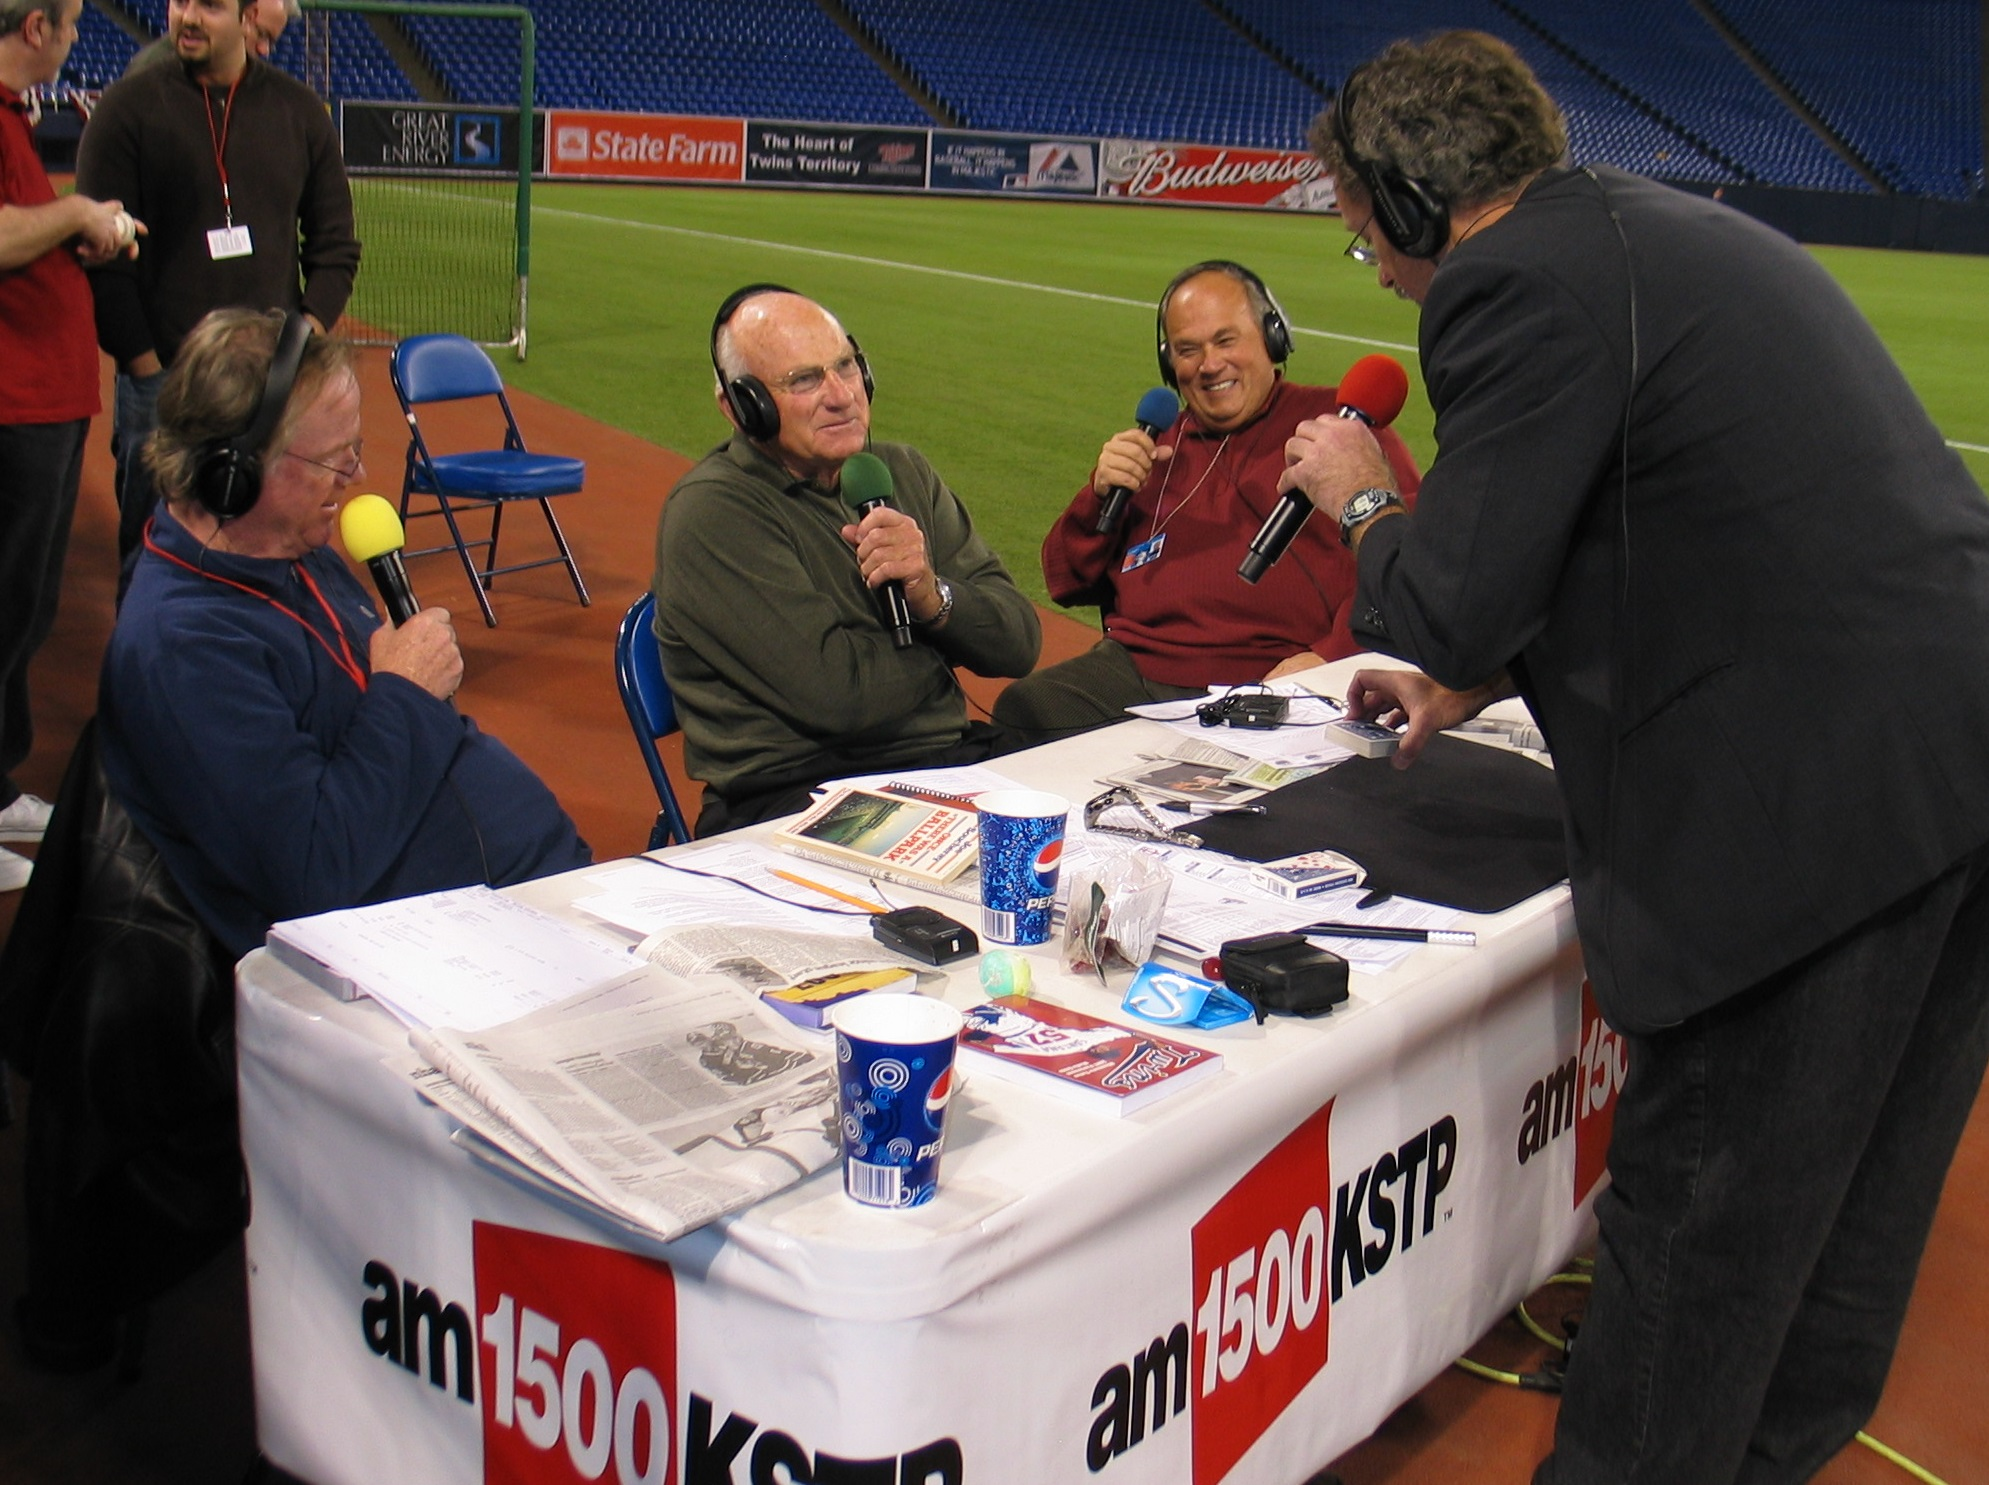 """Hondo performs """"Magic on the Radio"""" with baseball legend Harmon Killebrew and ESPN 1500 hosts Joe Soucheray and Patrick Reusse prior to a MN Twins game."""